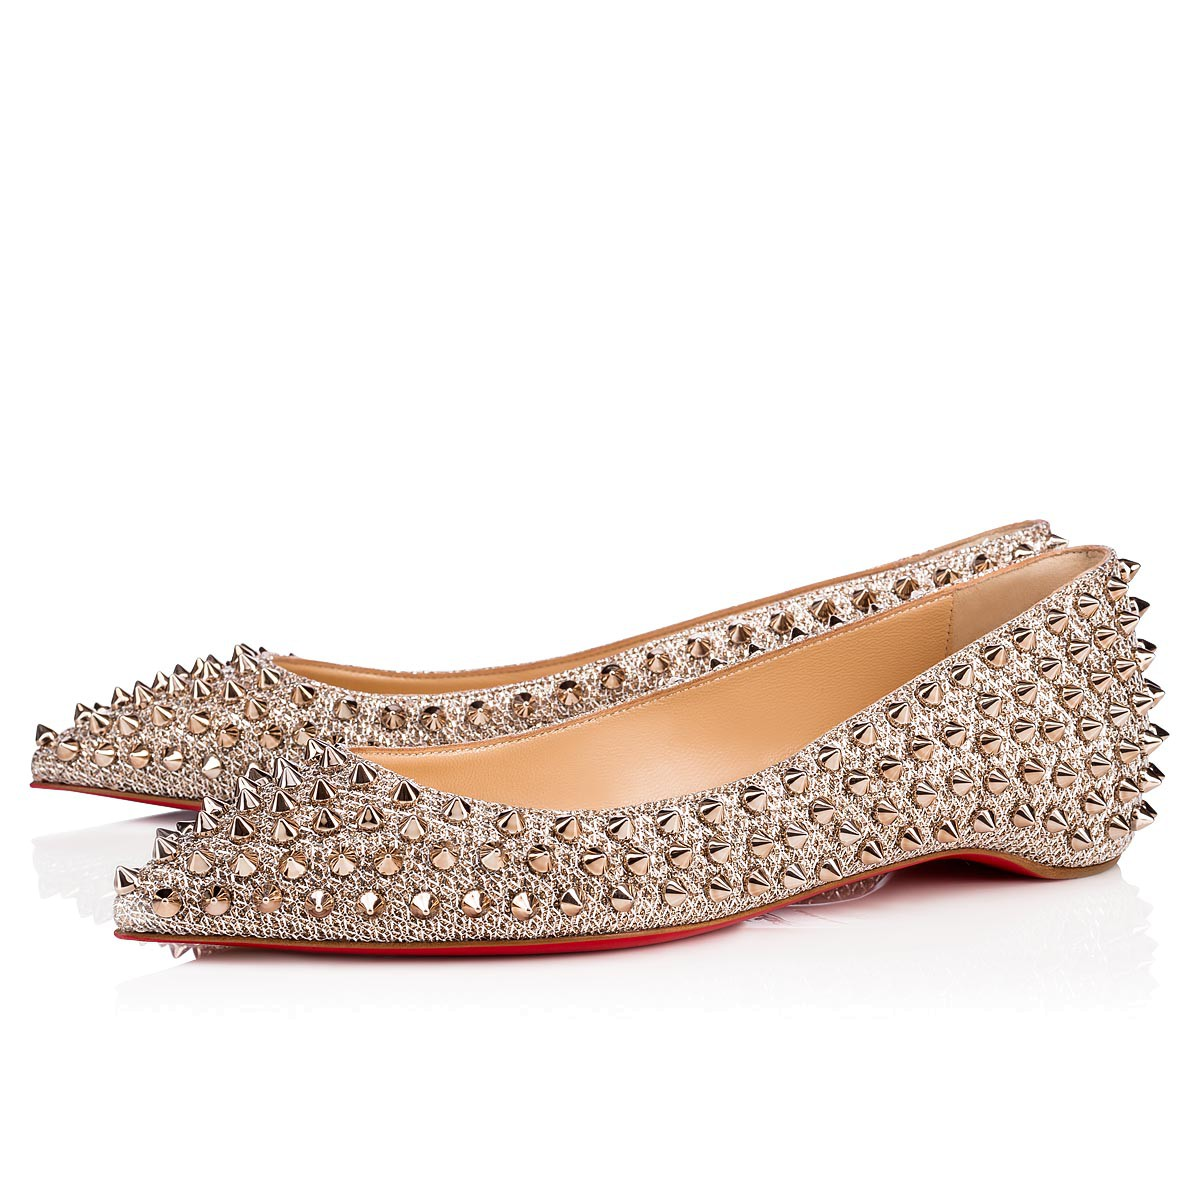 Women Shoes - Follies Spikes Flat Glitter - Christian Louboutin ... e4ab4c36b6fa